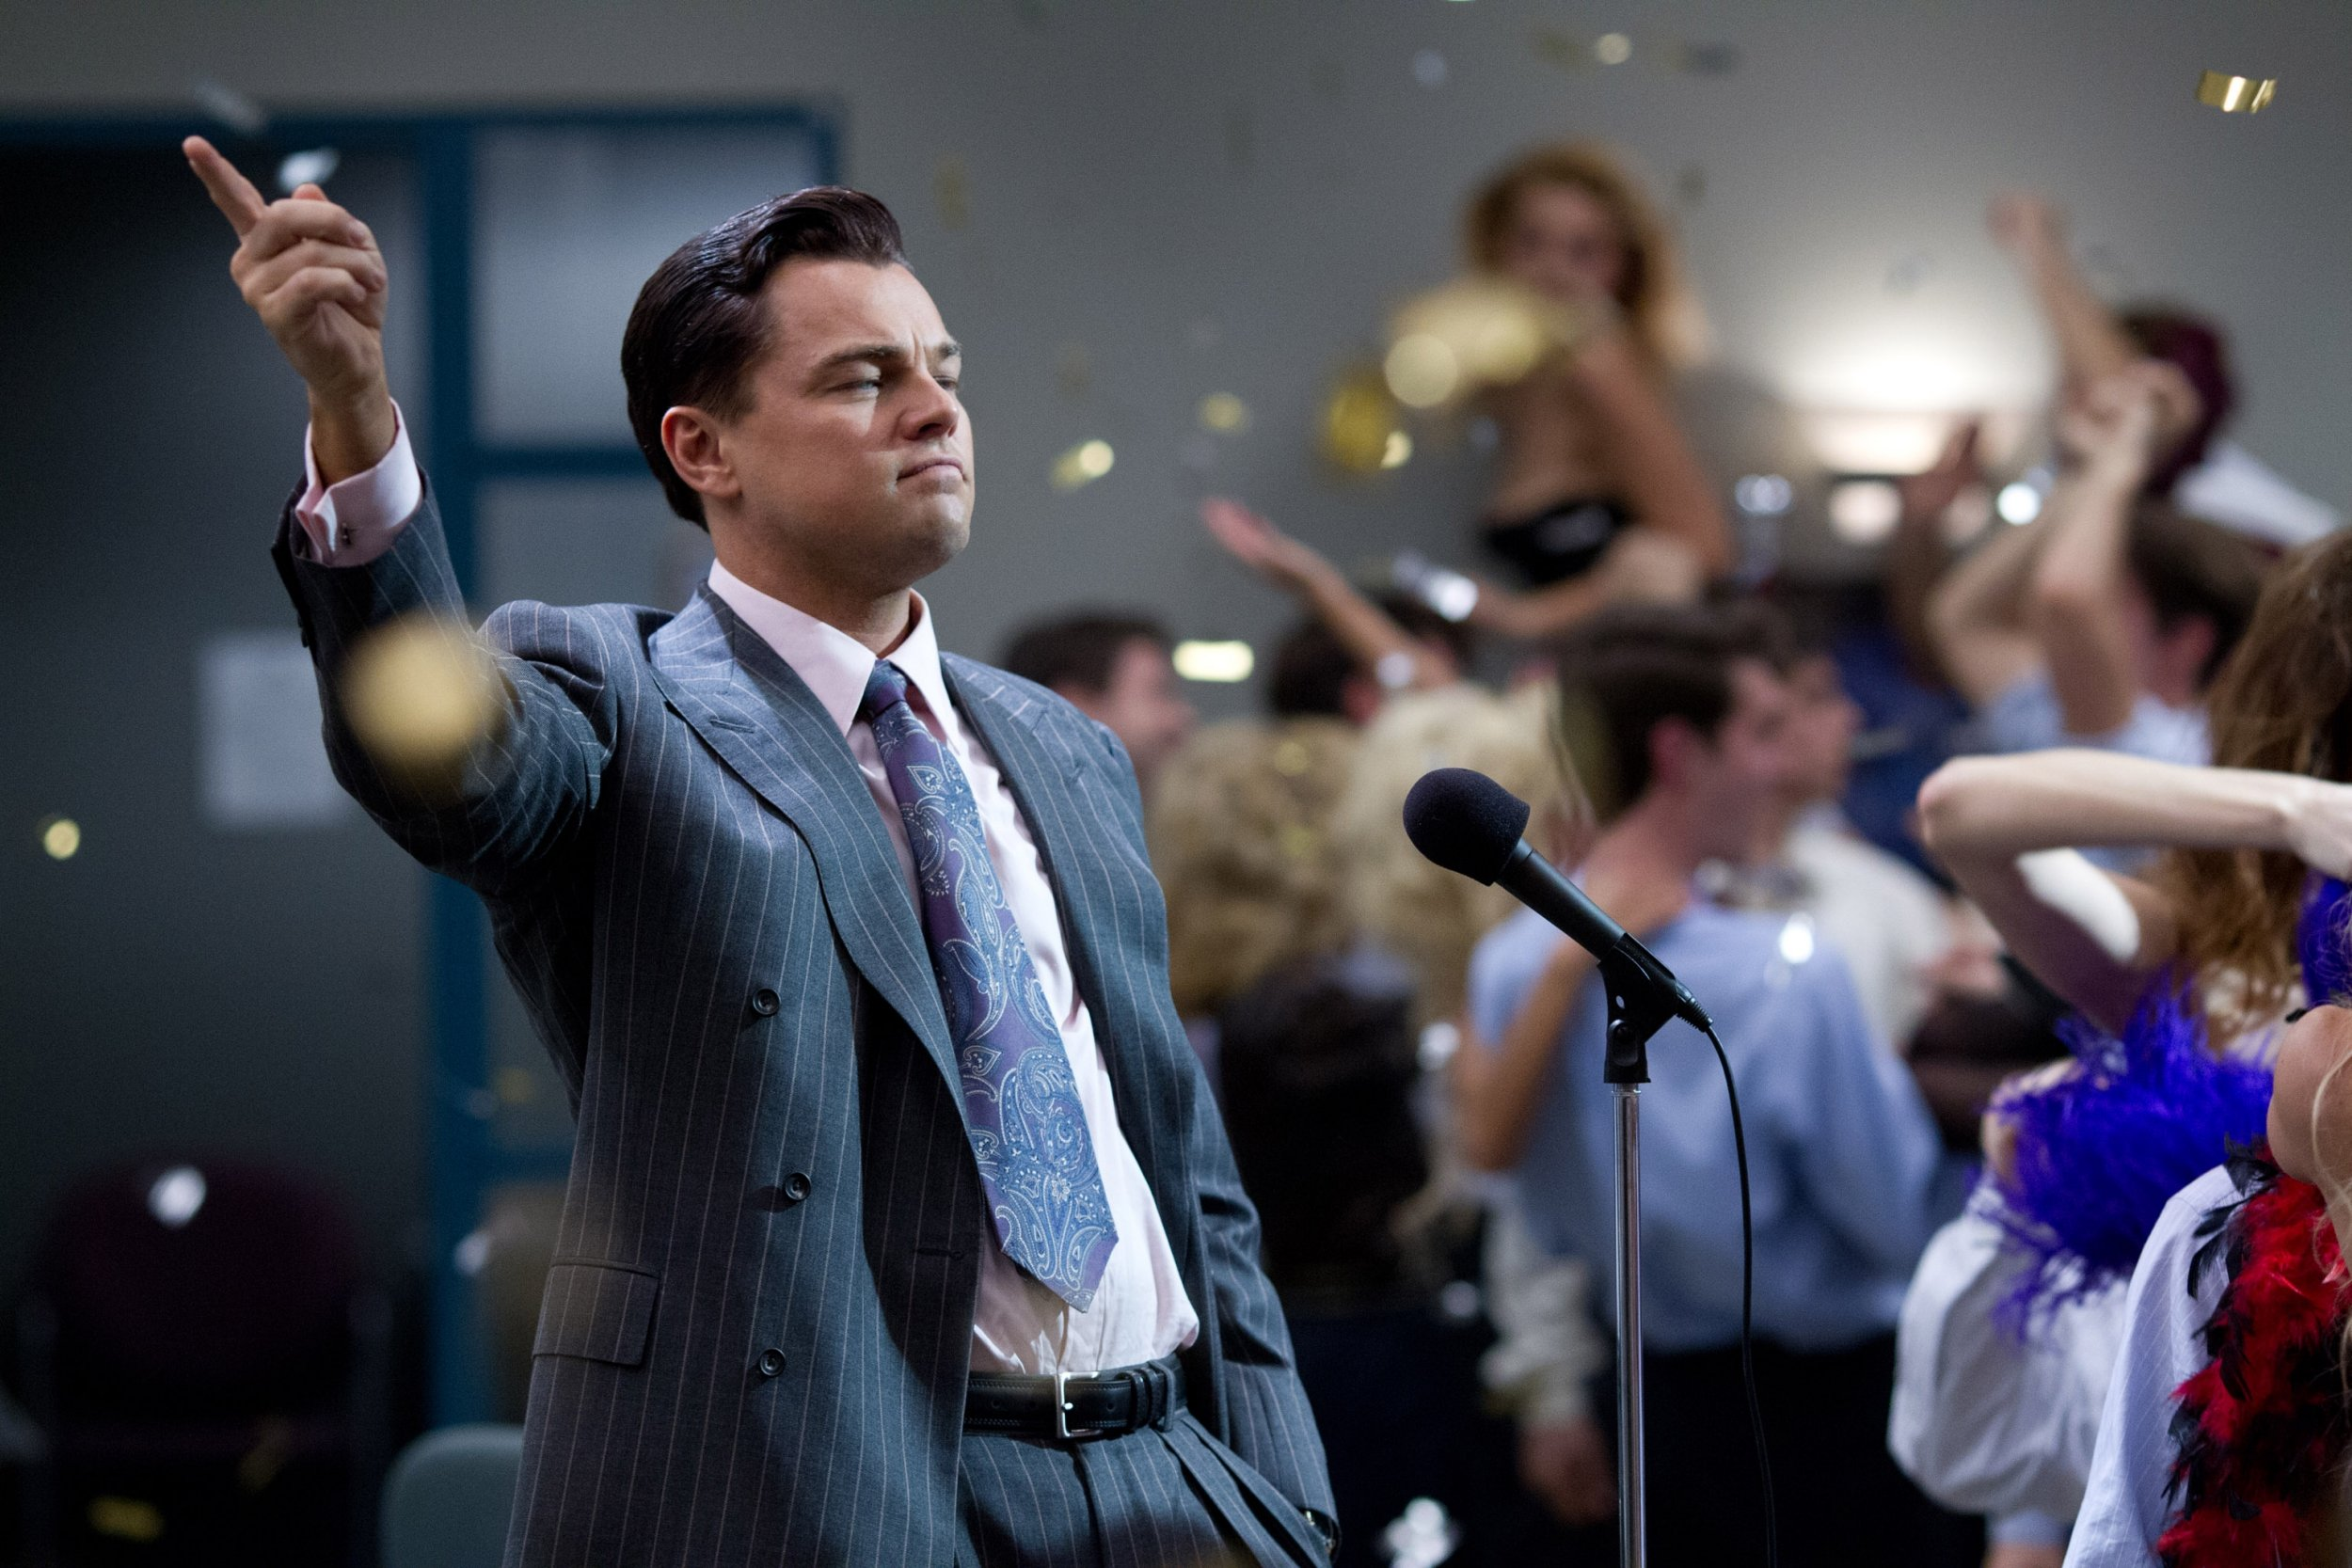 Film: The Wolf Of Wall Street (2013), starring Leonardo DiCaprio as Jordan Belfort.